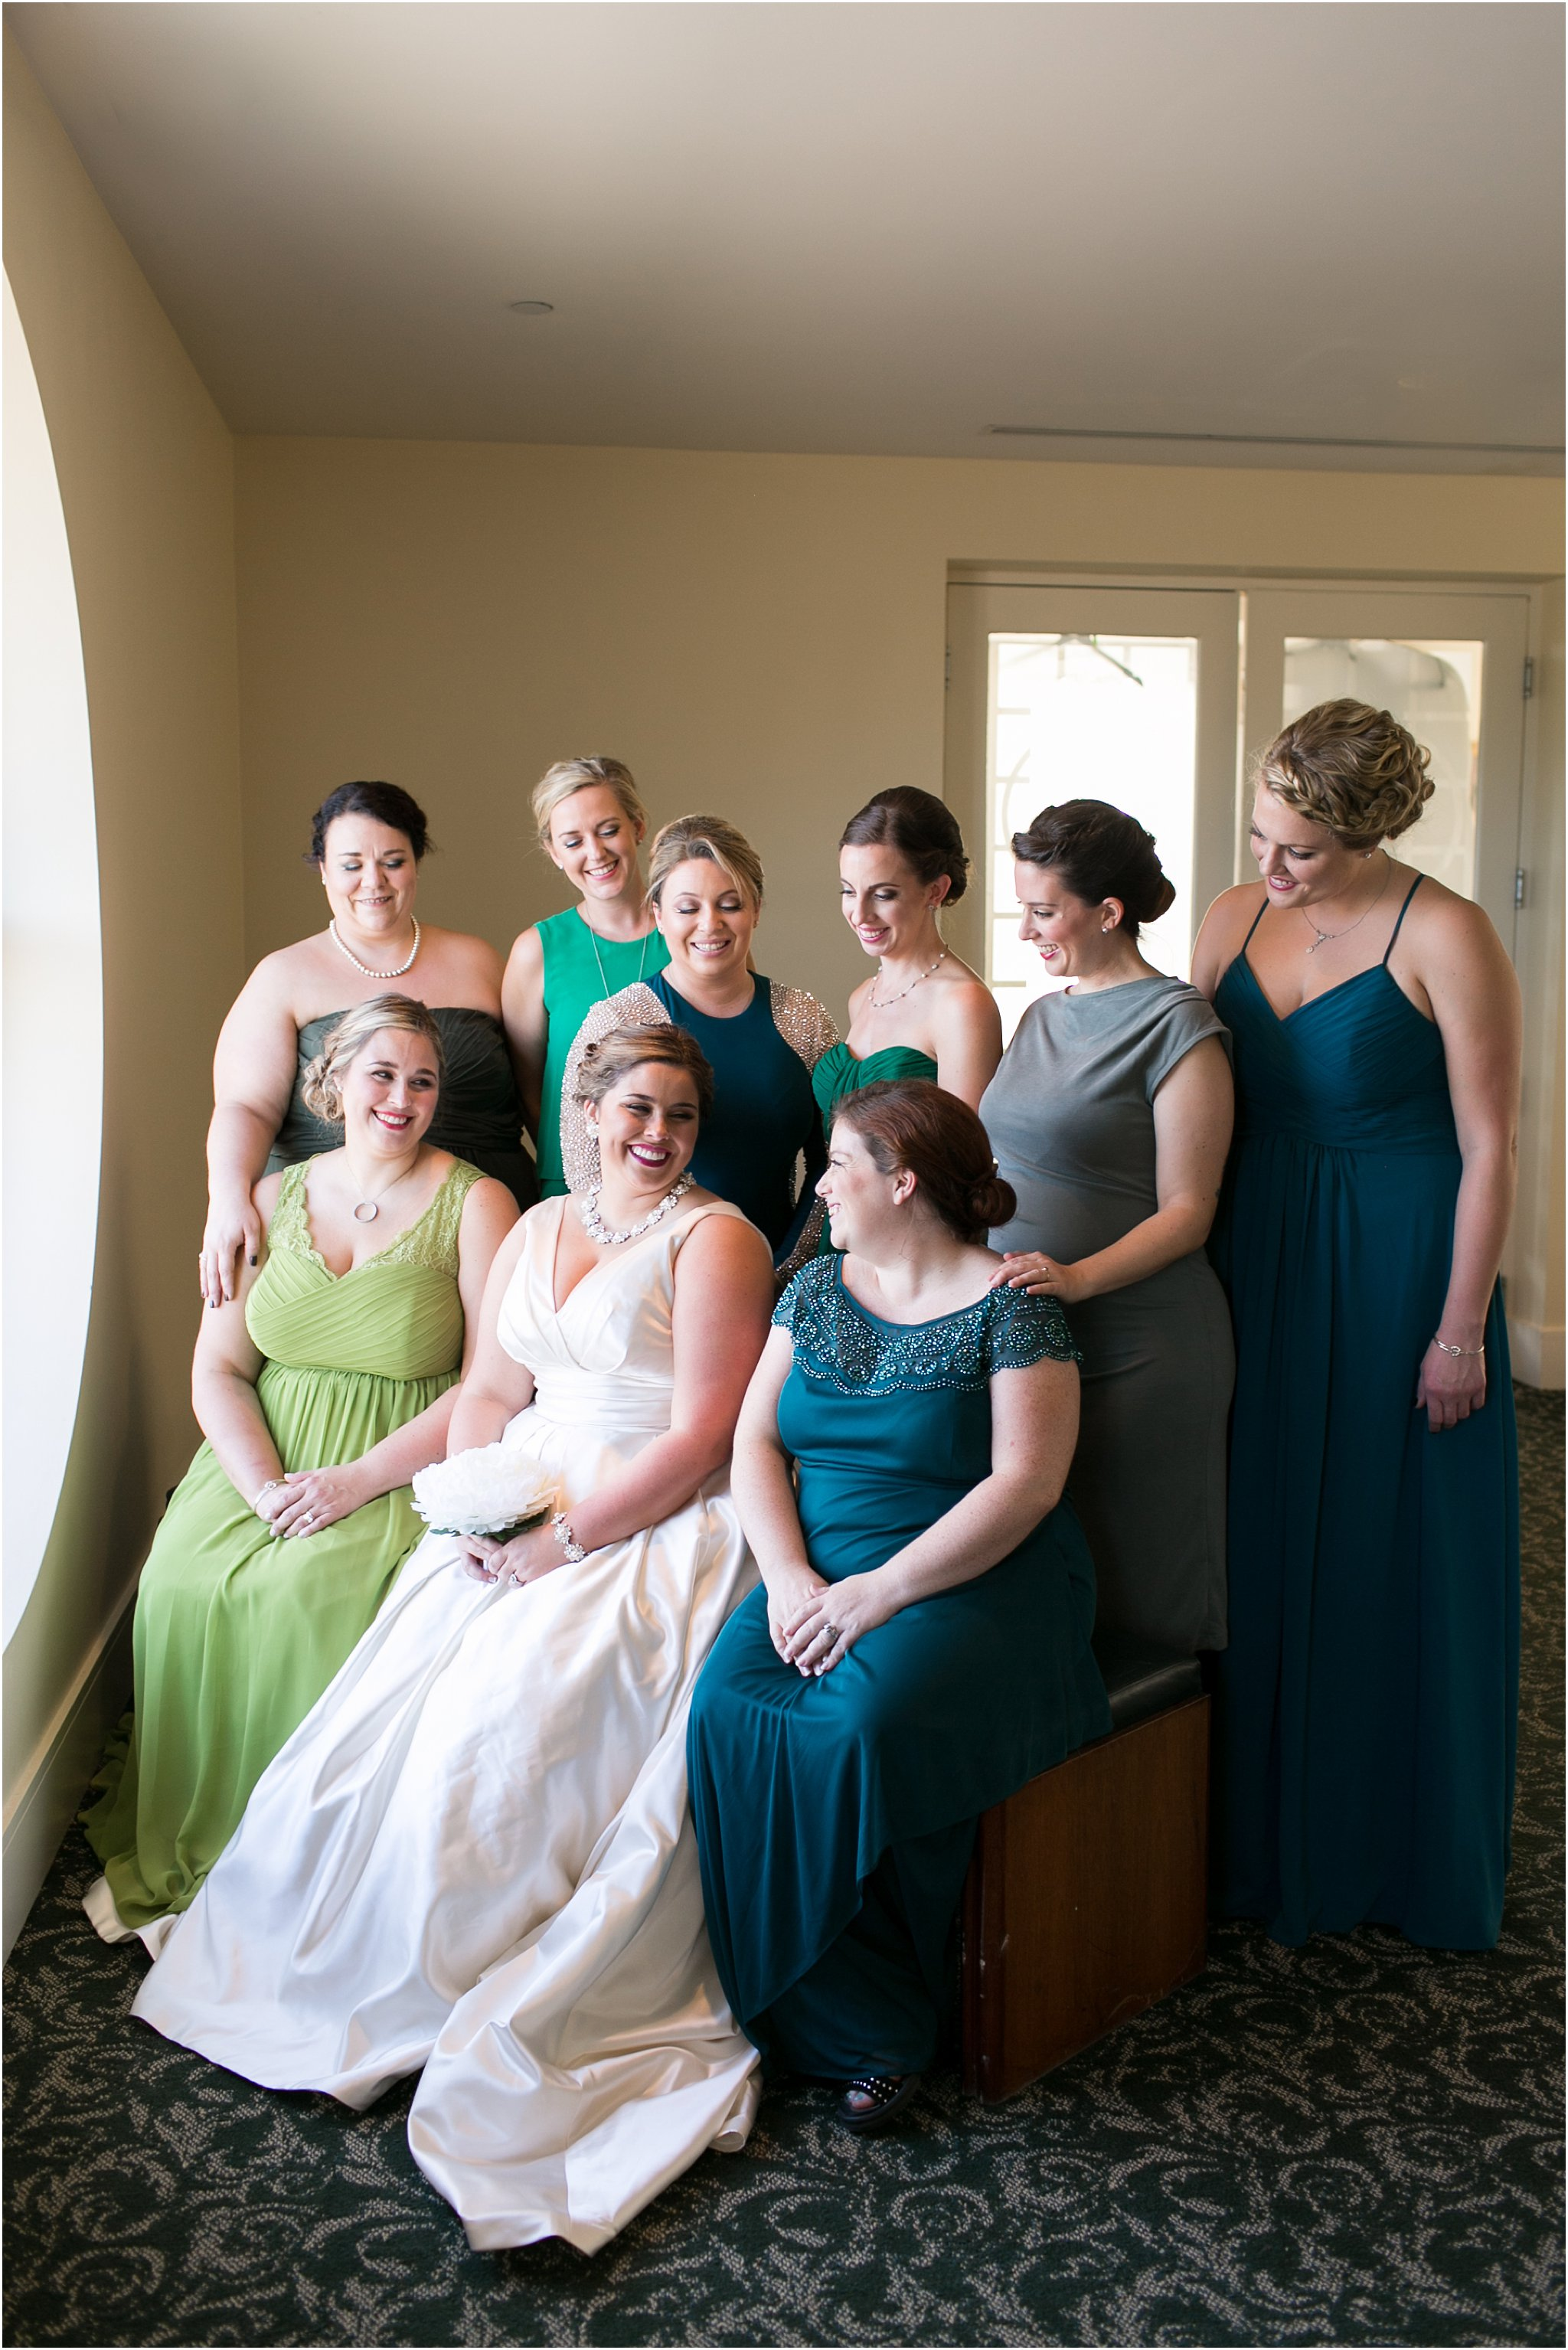 va_jessica_ryan_photography_virginia_wedding_norfolk_harrison_opera_house_norfolk_arts_district_portraits_3773